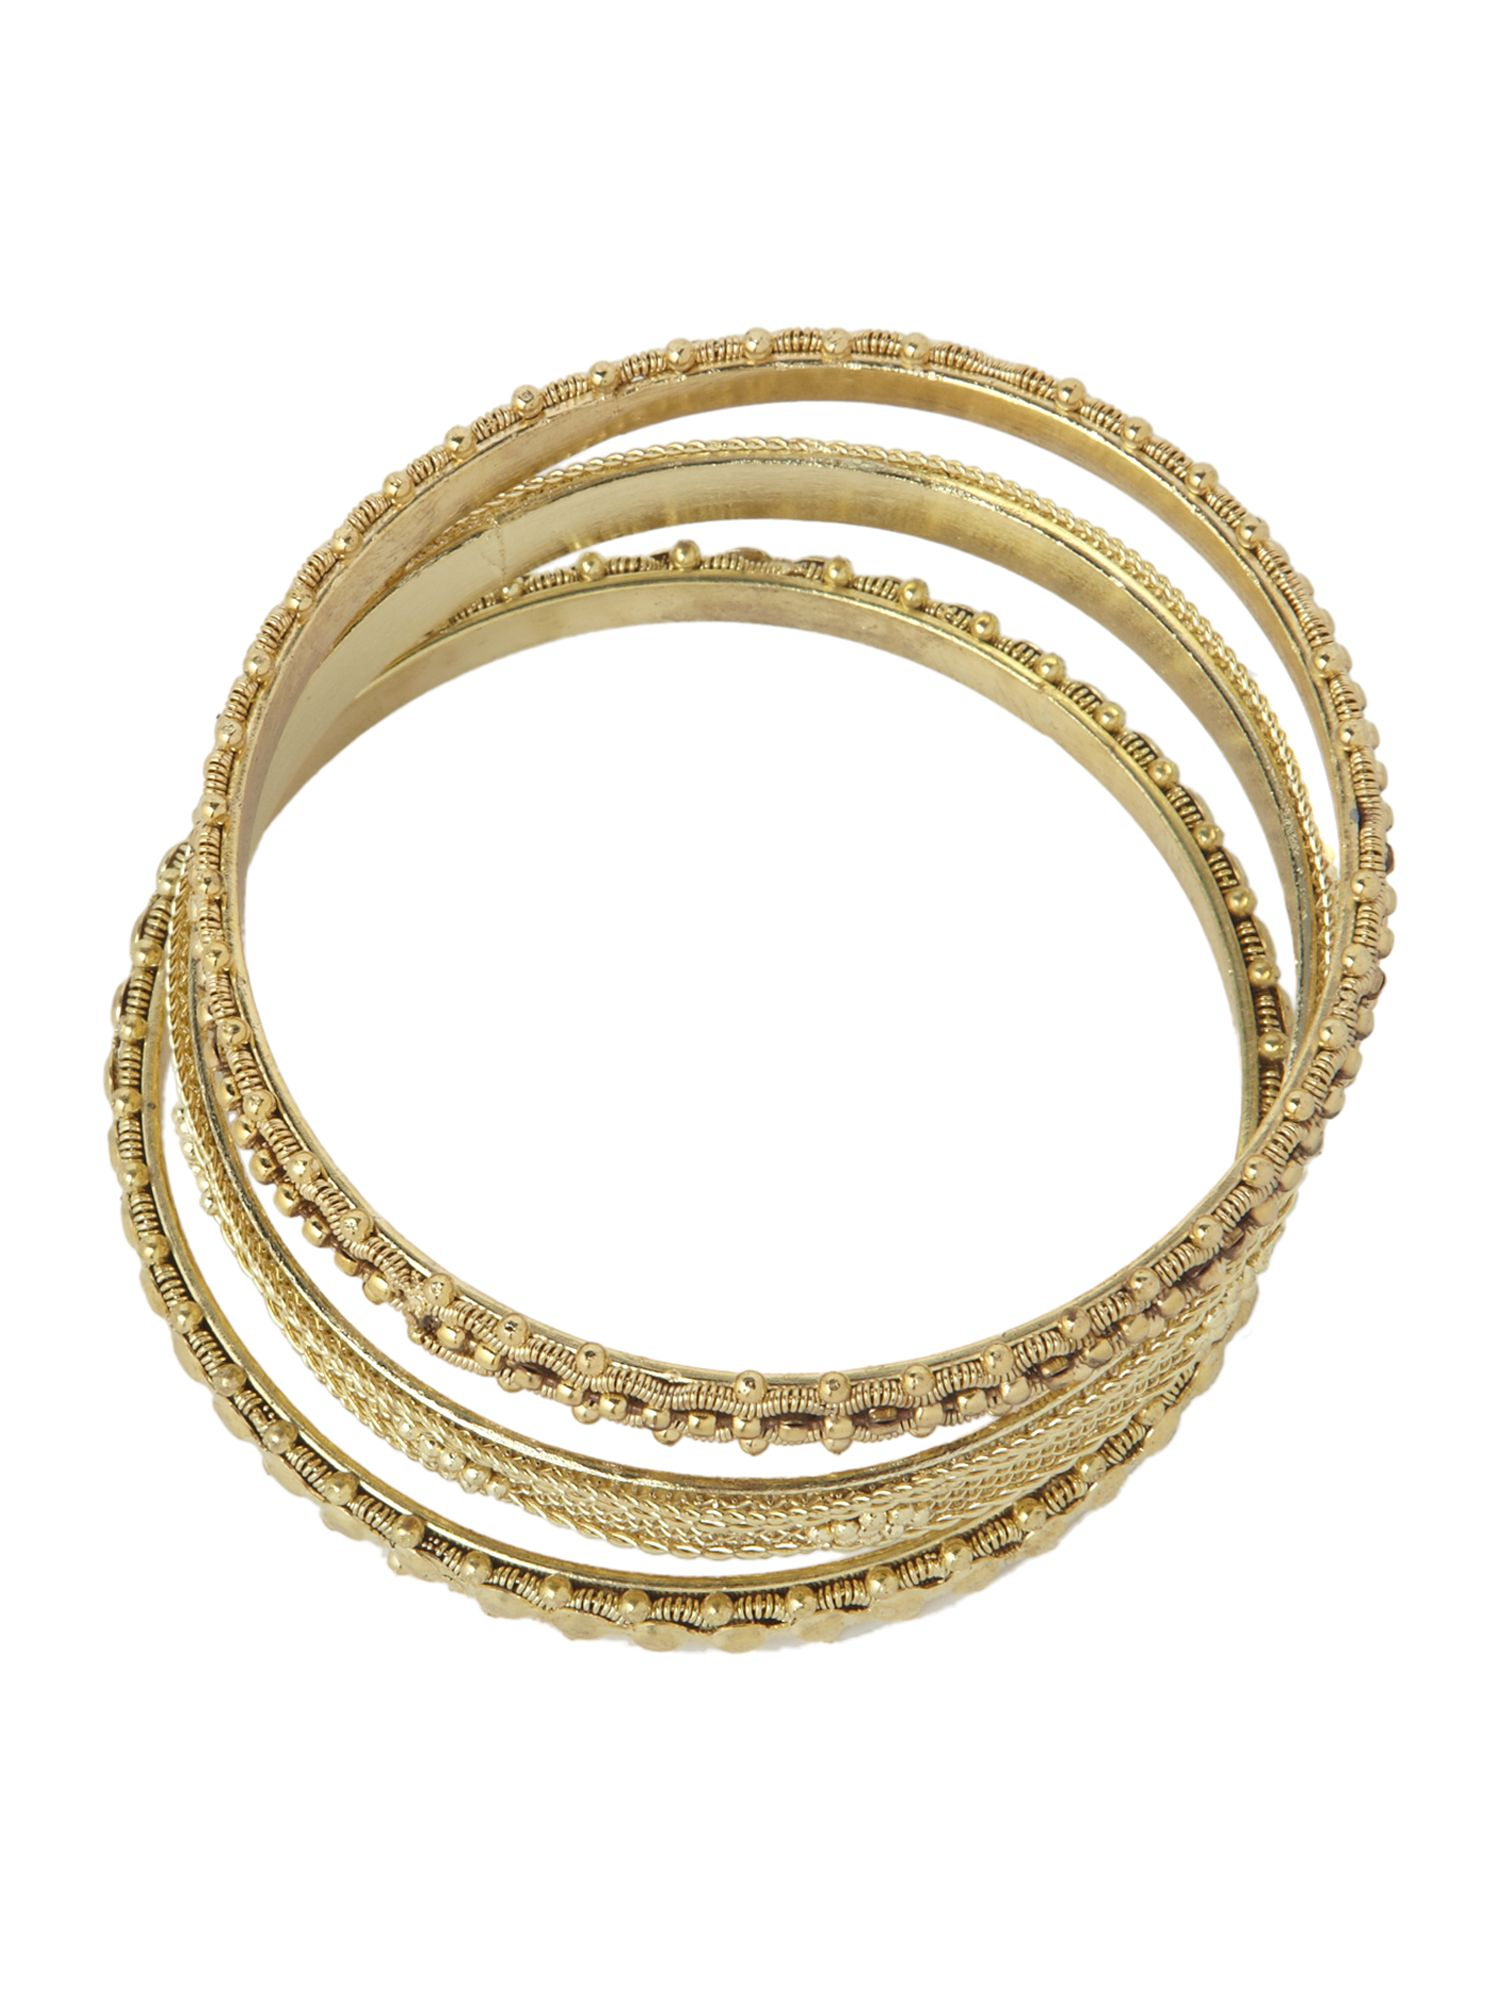 Lisbeth Dahl Four bangle set product image